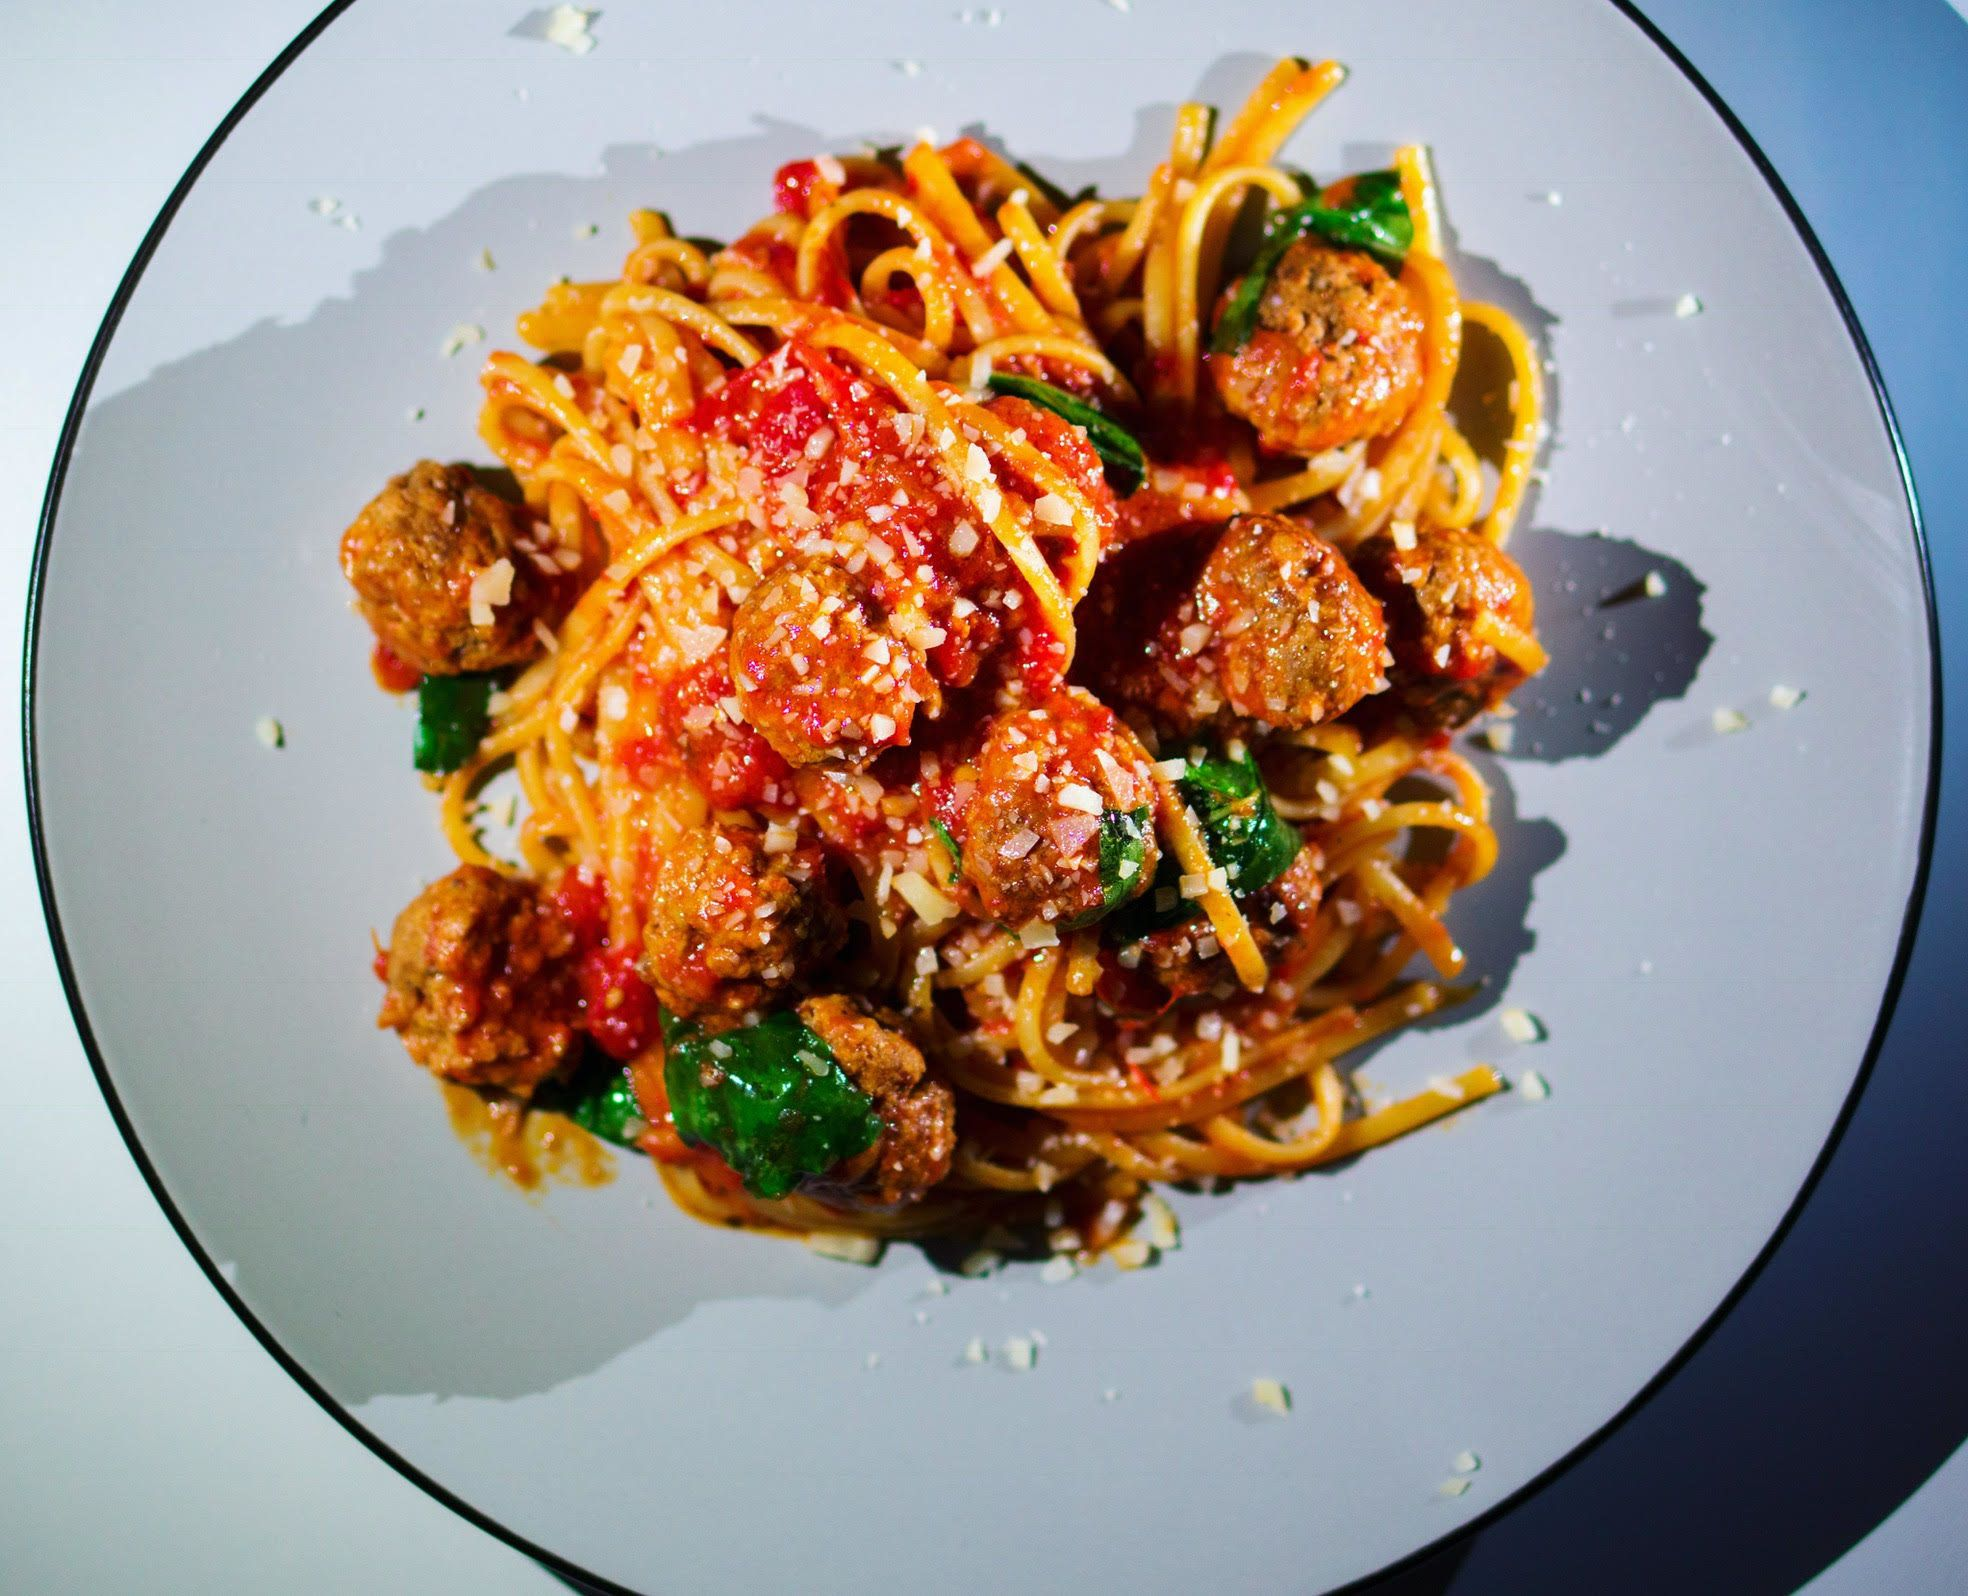 Despite what everyone says, spaghetti and meatballs have existednot only in theU.S.but also inItaly's Abruzzo region.